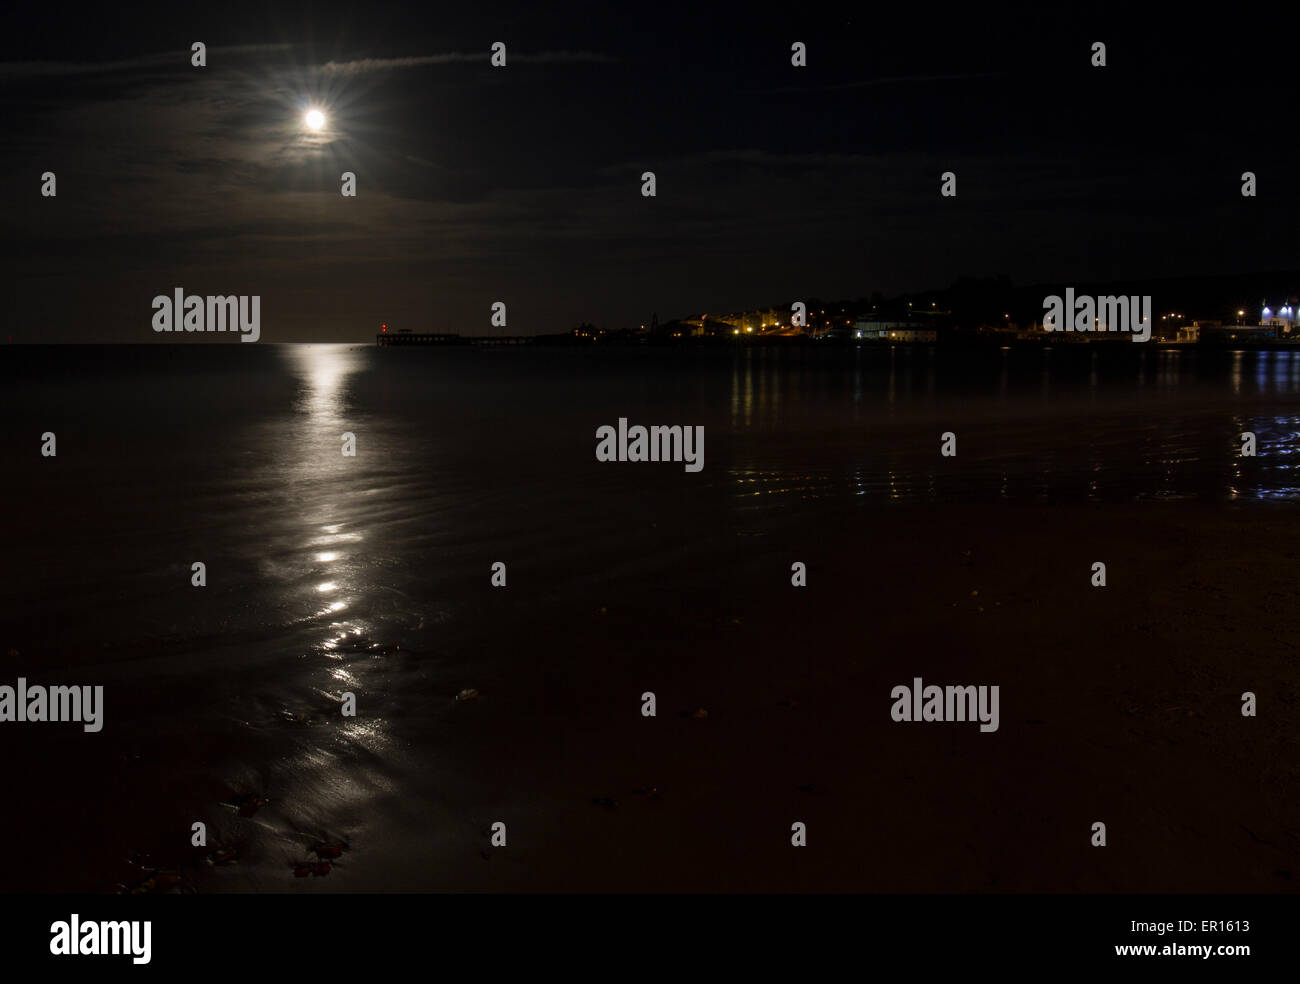 full moon shimmering over water in bay - Stock Image